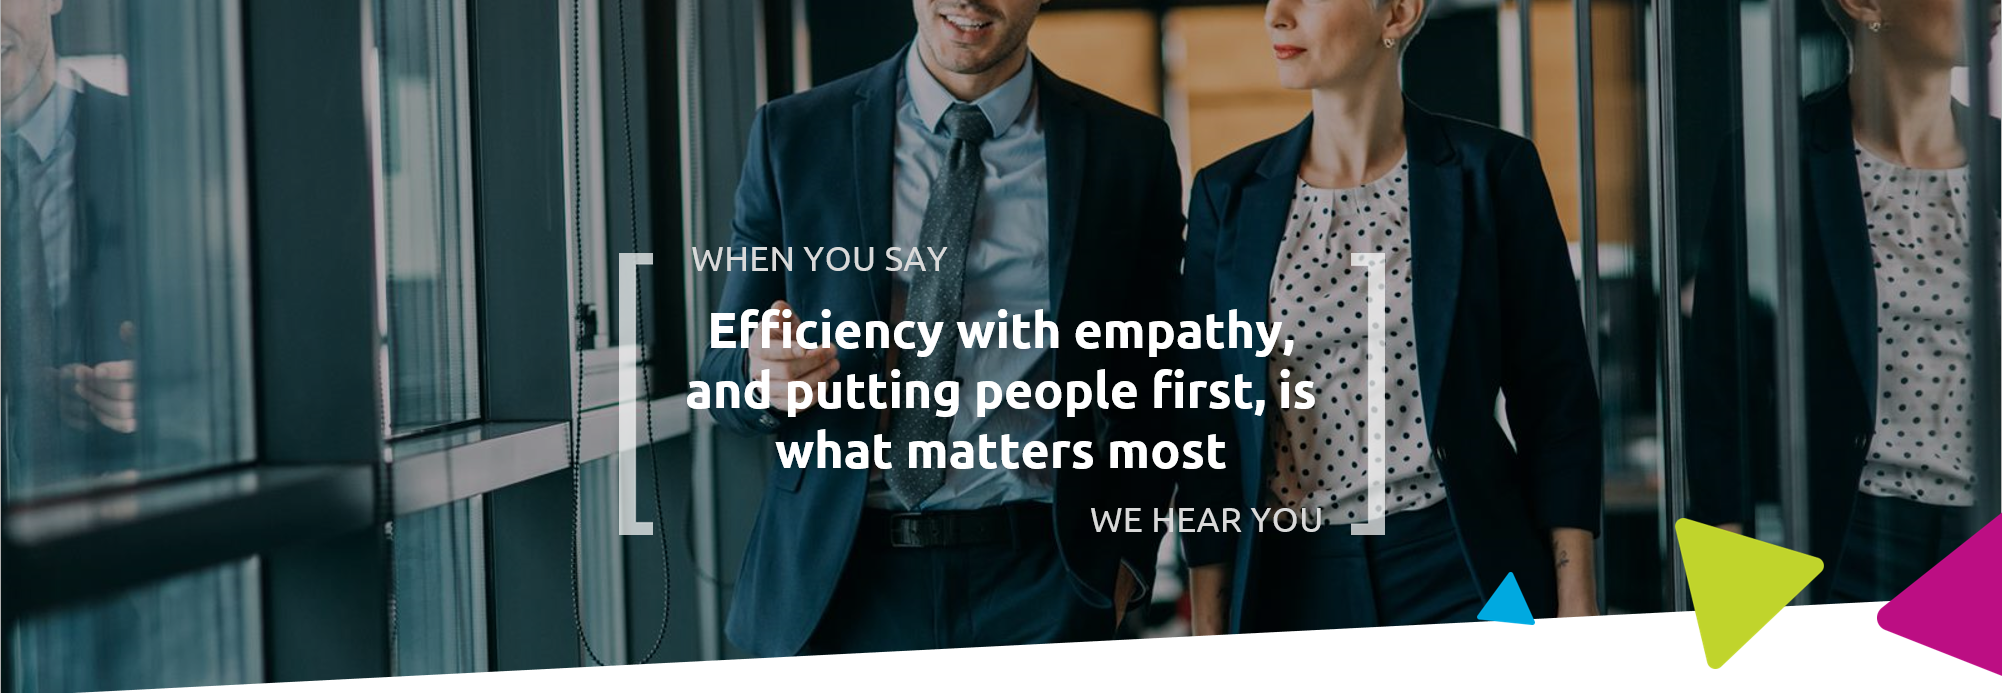 When you say efficiency with empathy, and putting people first, is what matters most, we hear you